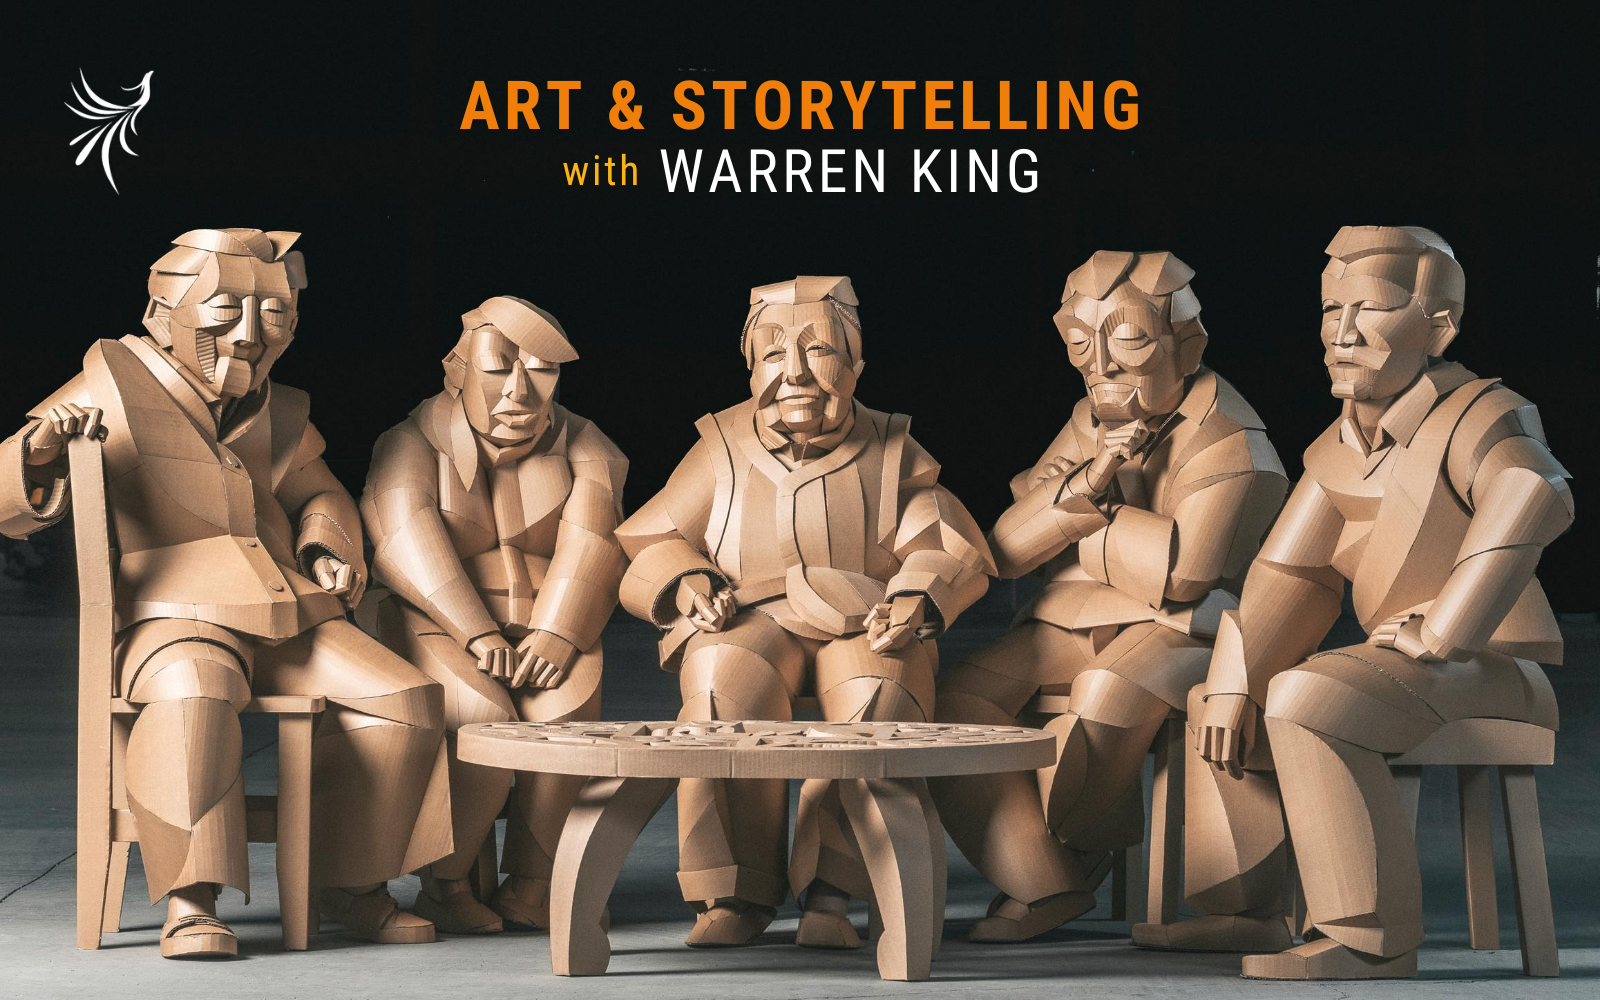 Art & Storytelling with Warren King image